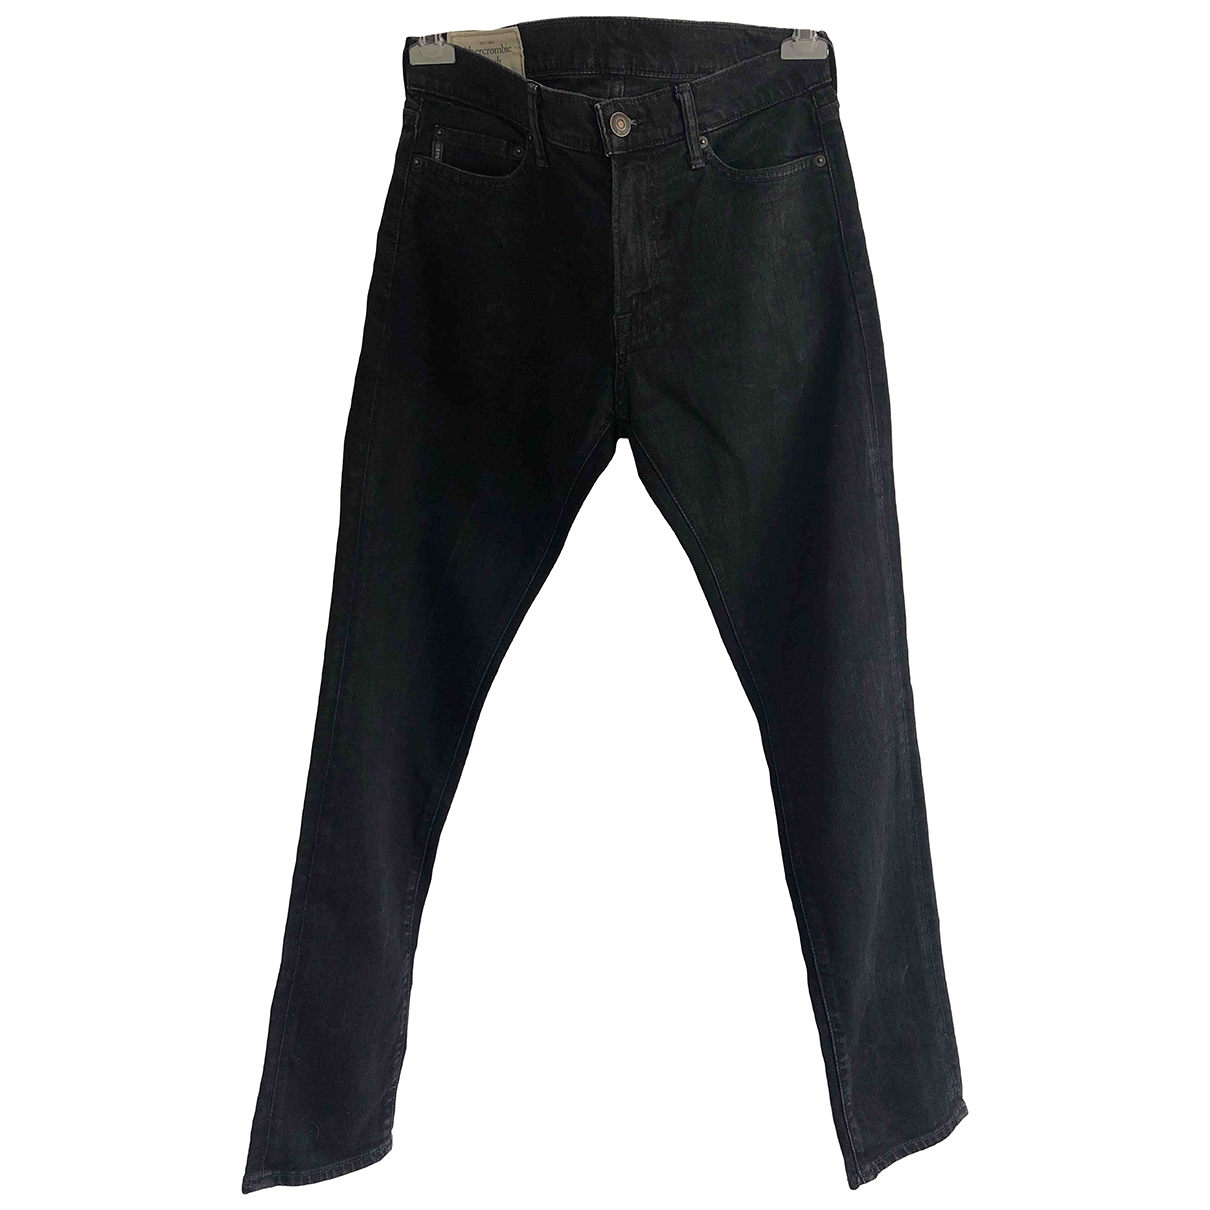 Abercrombie & Fitch \N Black Cotton - elasthane Jeans for Women 32 US